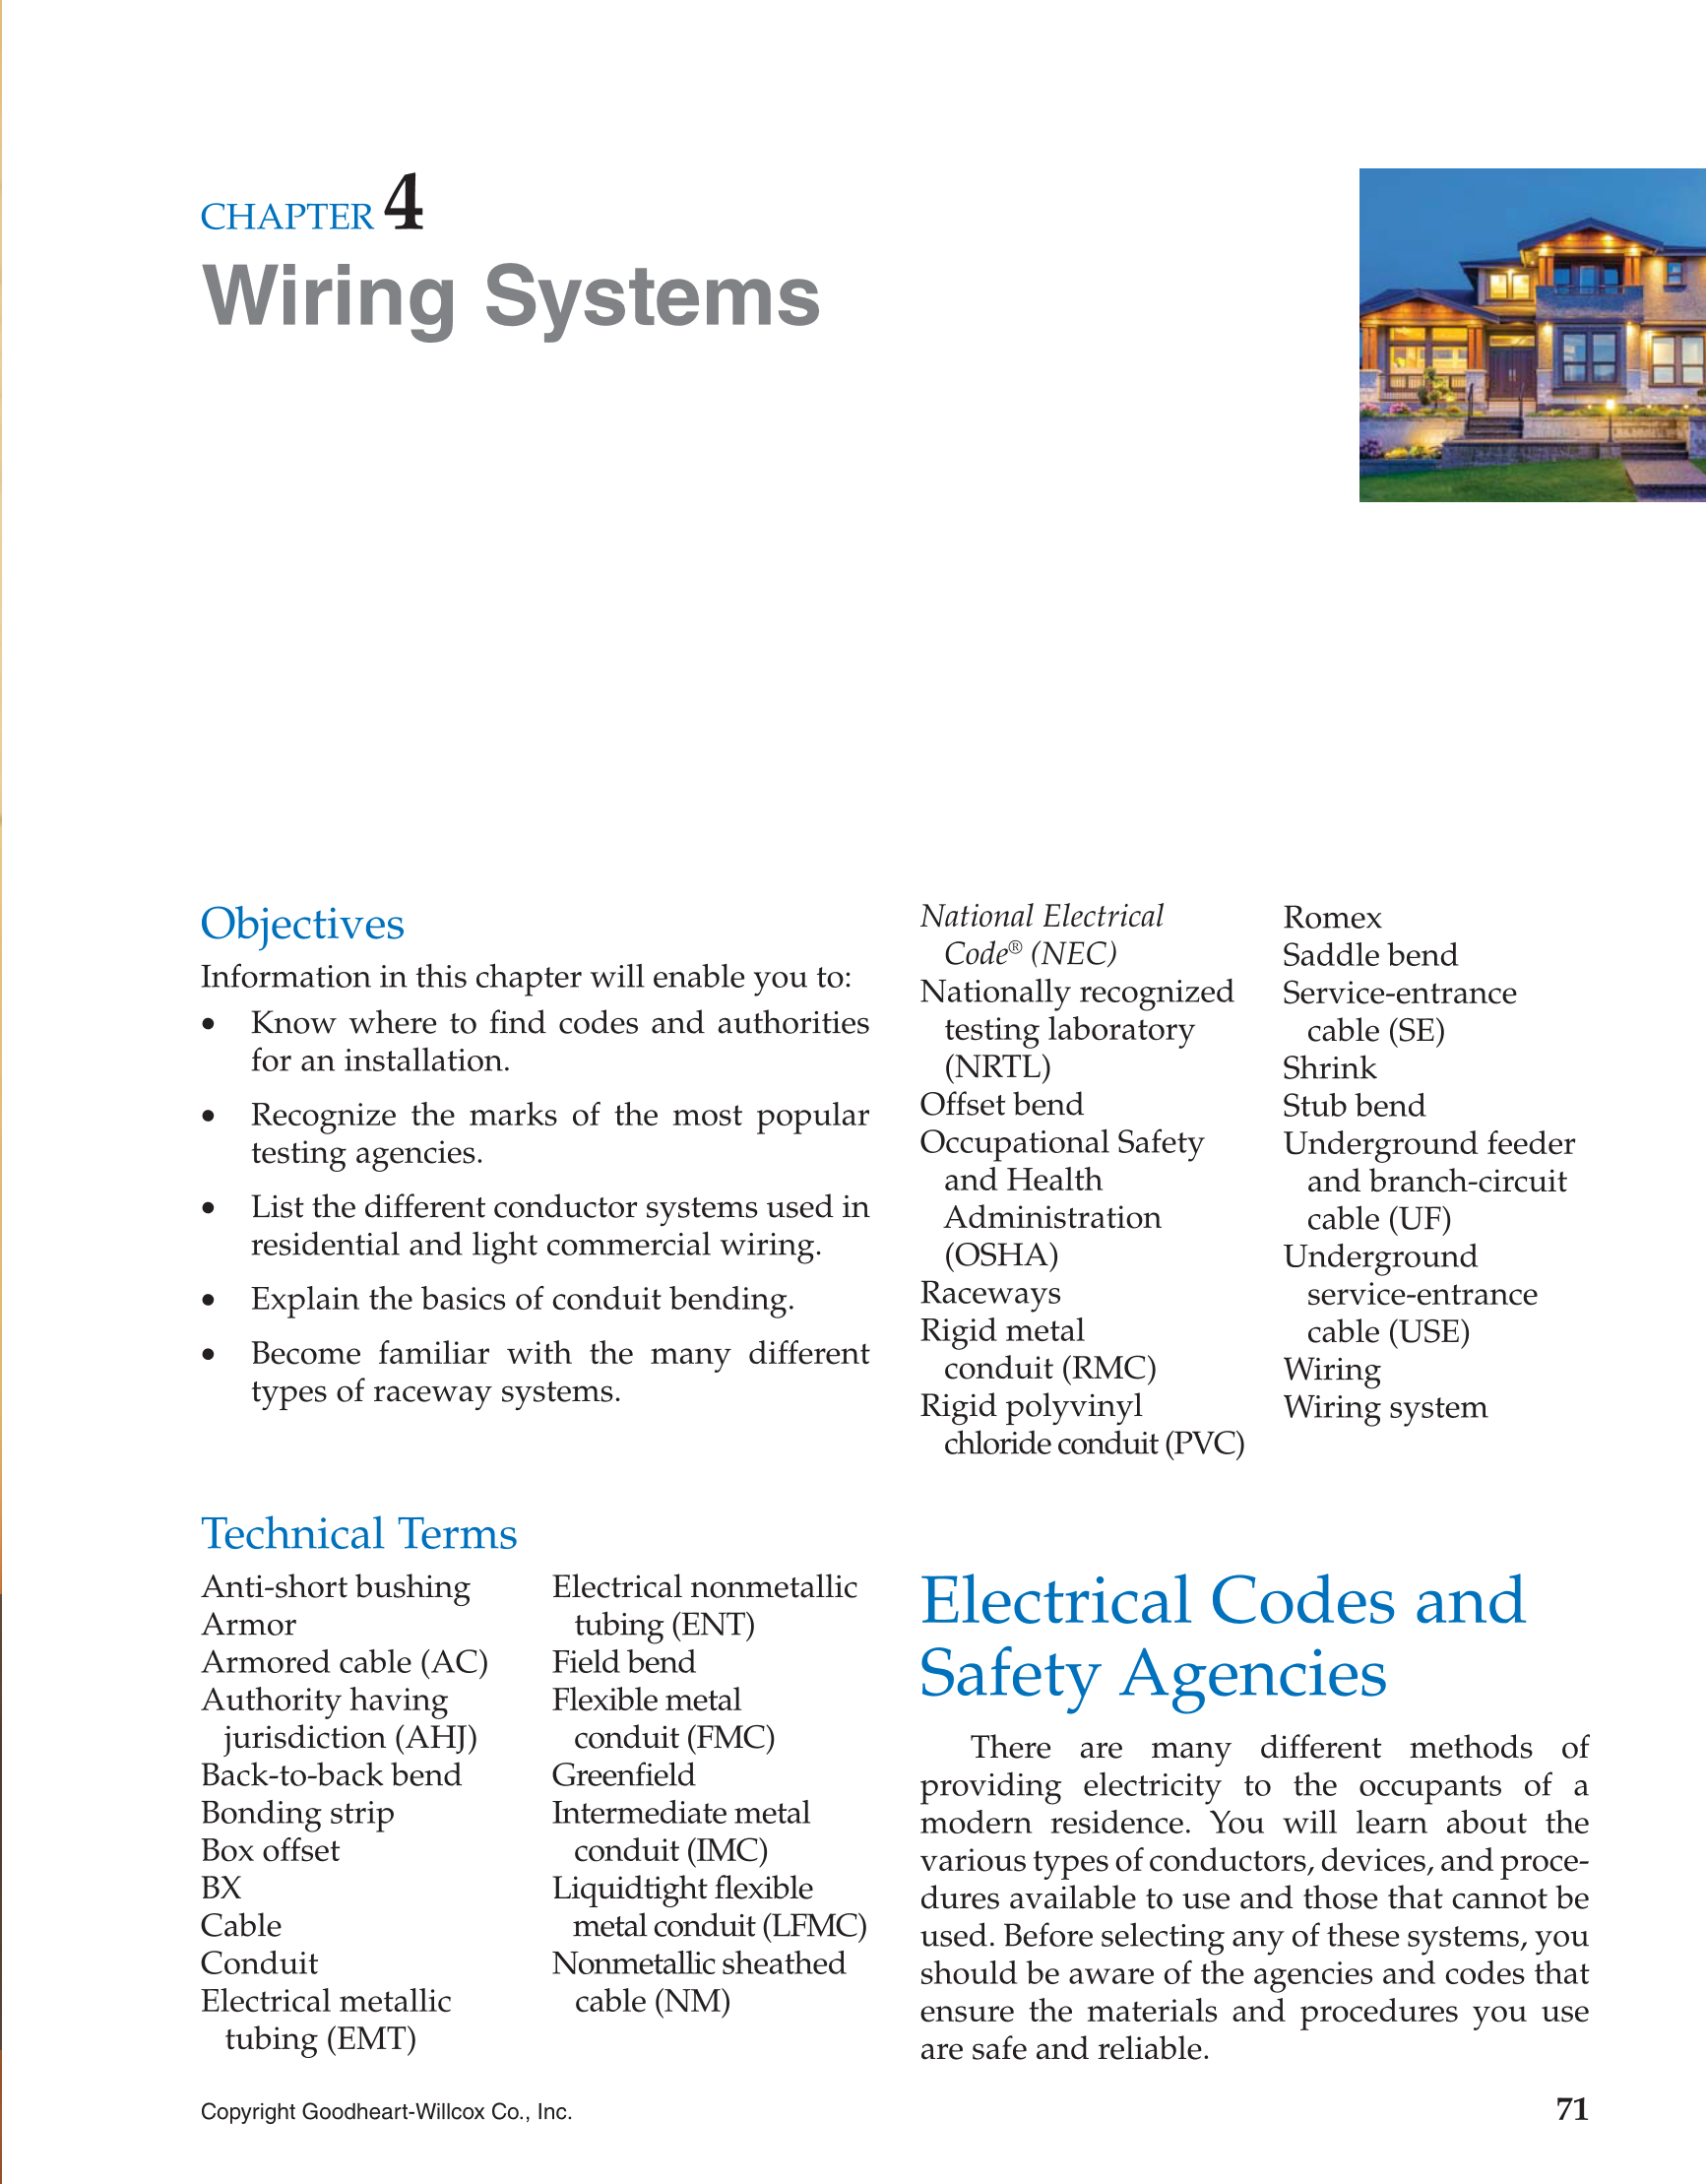 Attractive Different Types Of Wiring Methods Image - Electrical ...